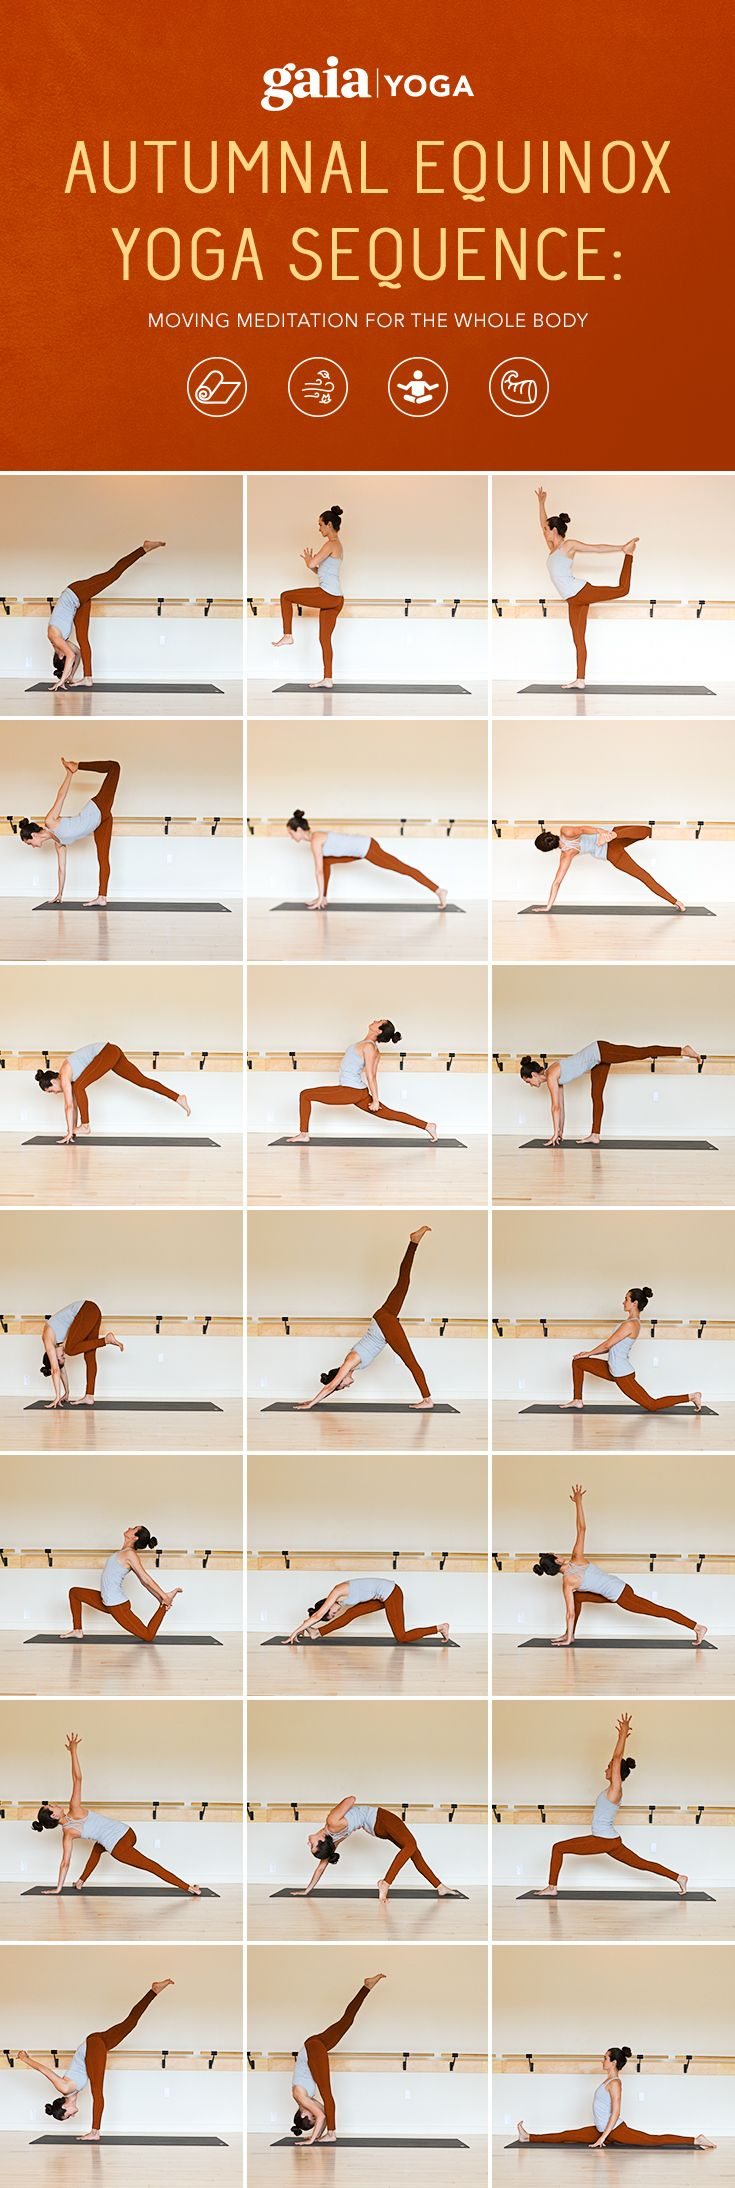 Autumnal Equinox Yoga Sequence: Moving Meditation for the Whole Body                                                                                                                                                                                 More